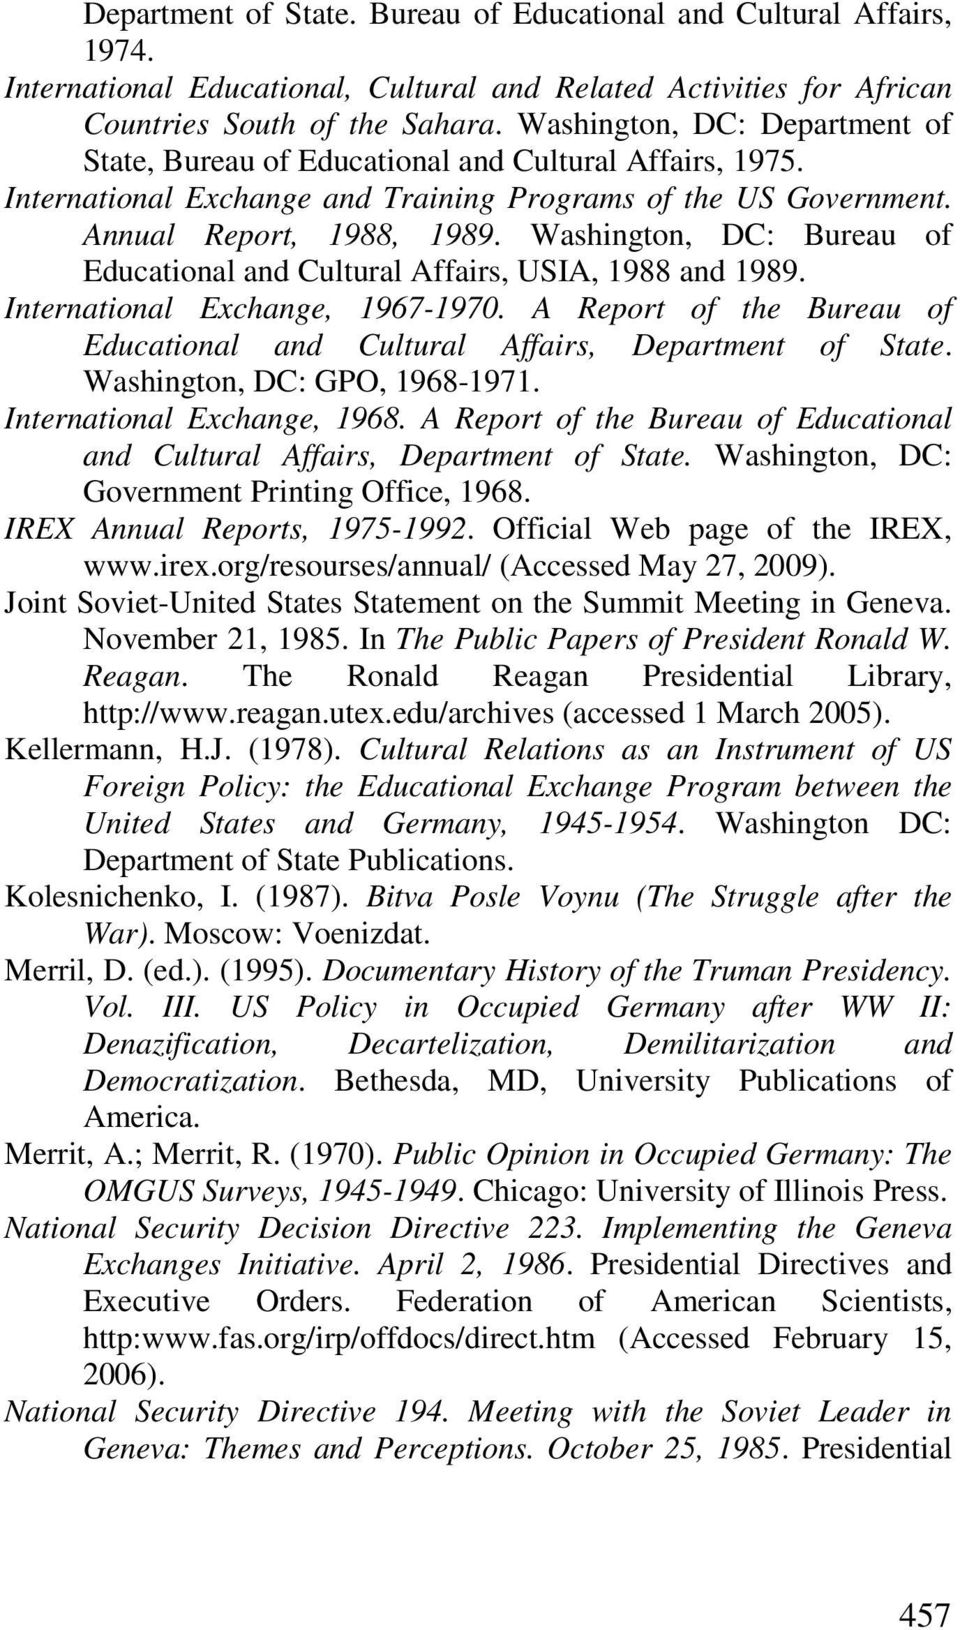 Washington, DC: Bureau of Educational and Cultural Affairs, USIA, 1988 and 1989. International Exchange, 1967-1970. A Report of the Bureau of Educational and Cultural Affairs, Department of State.